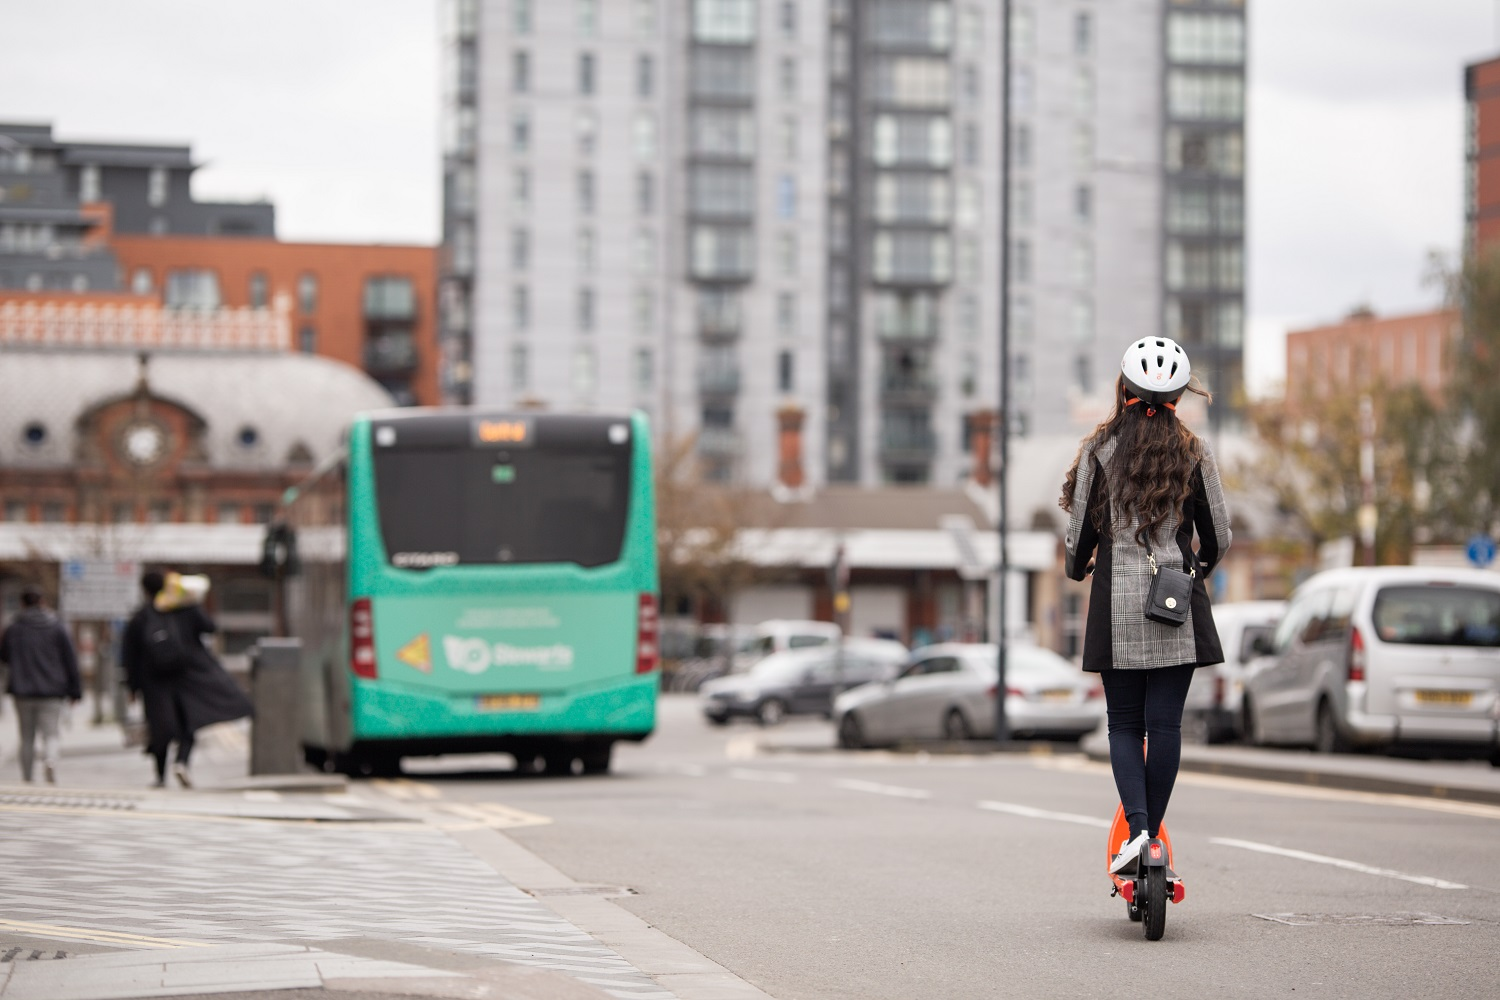 Prioritise micromobility over cars, says international think tank